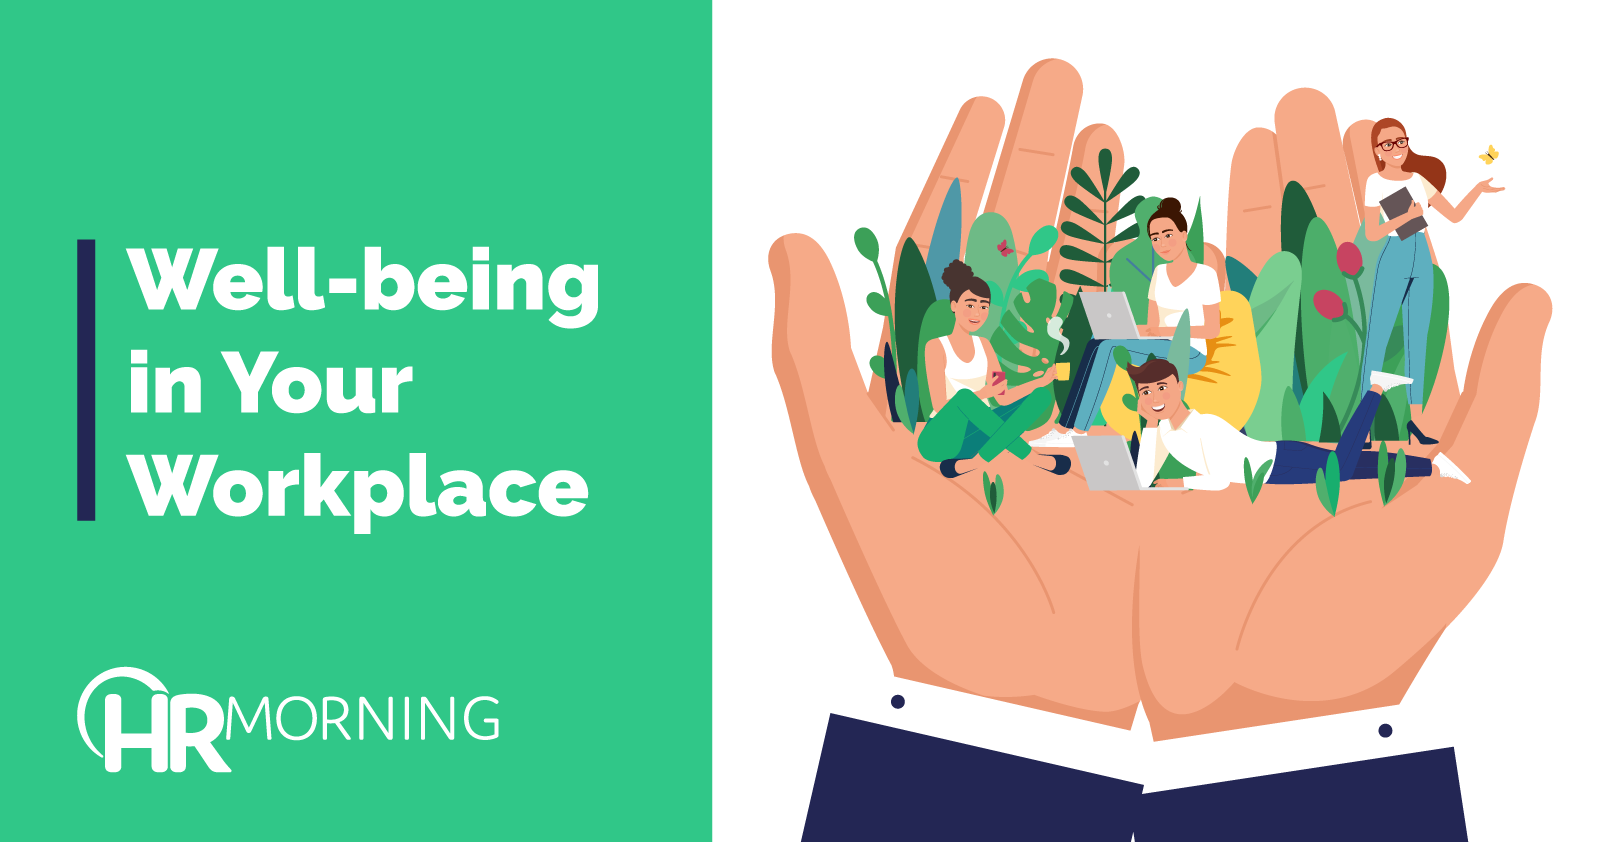 Well-being In Your Workplace